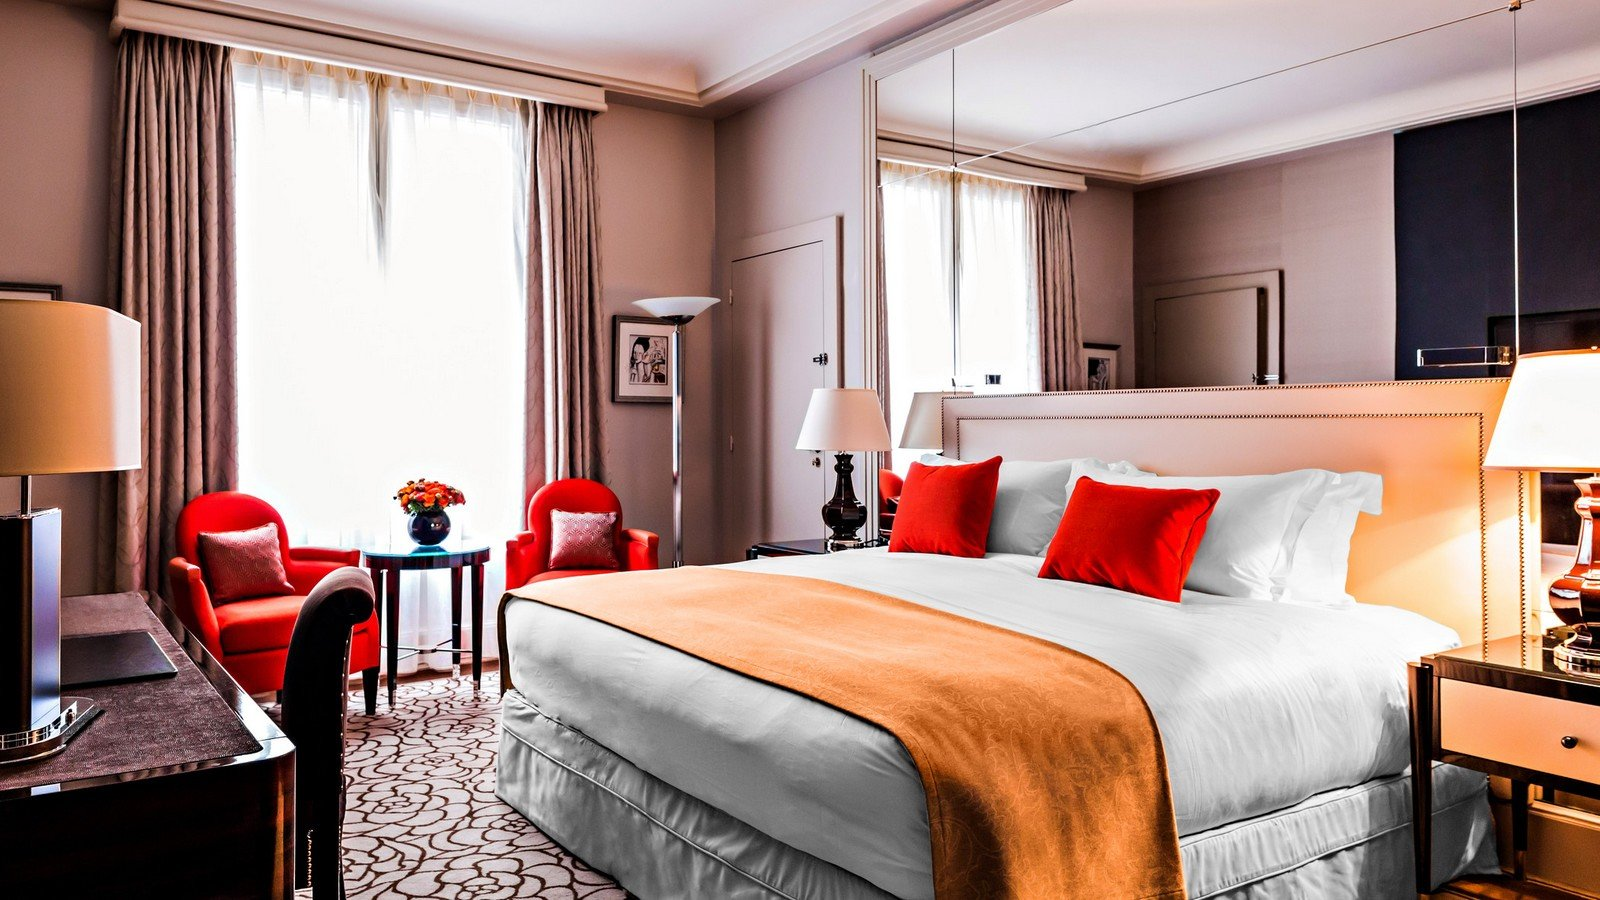 prince de galles paris prince de galles suite saphir hotel in paris near champs elysees and. Black Bedroom Furniture Sets. Home Design Ideas